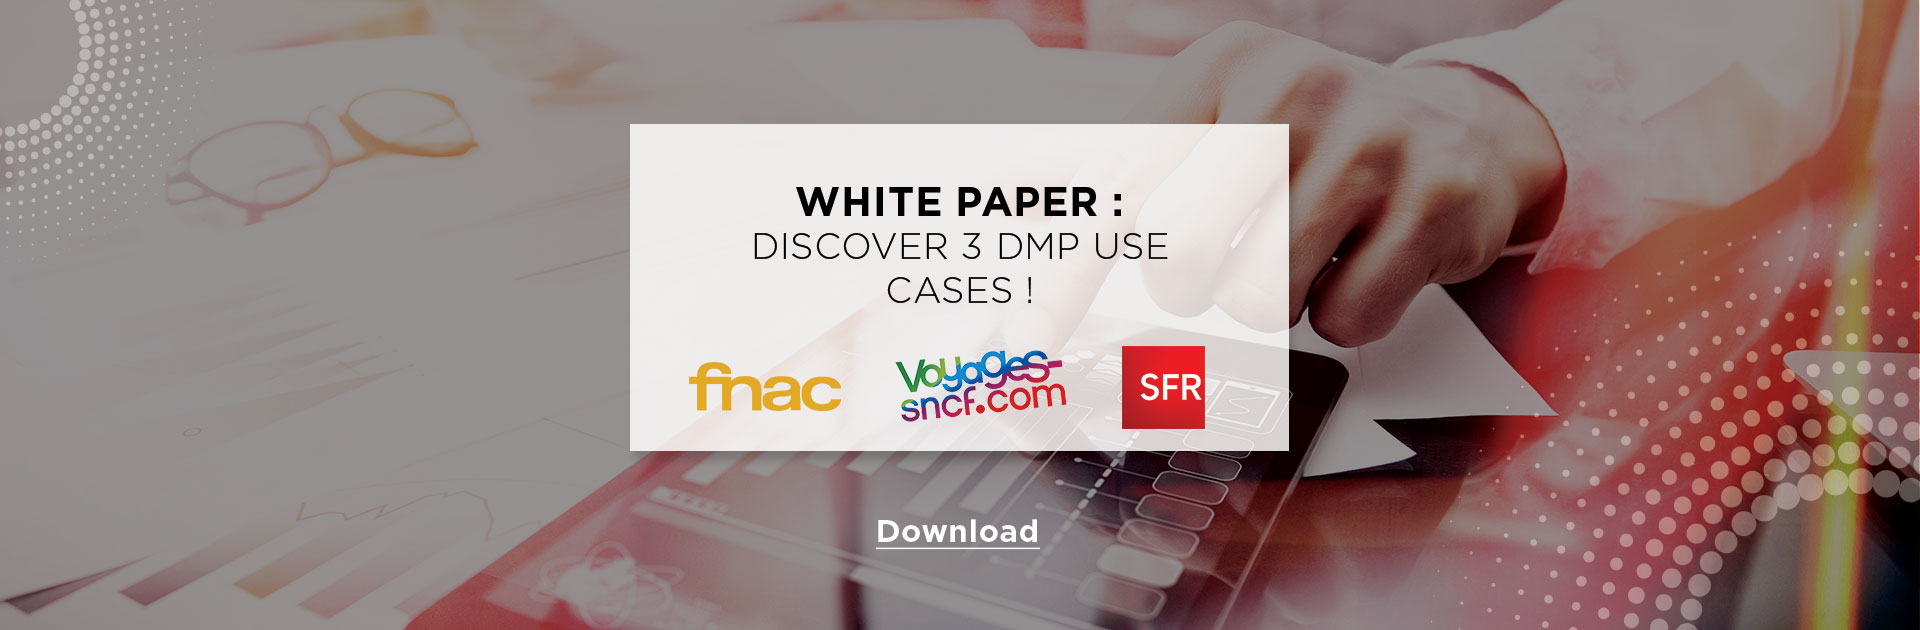 White paper : Discover 3 DMP use cases